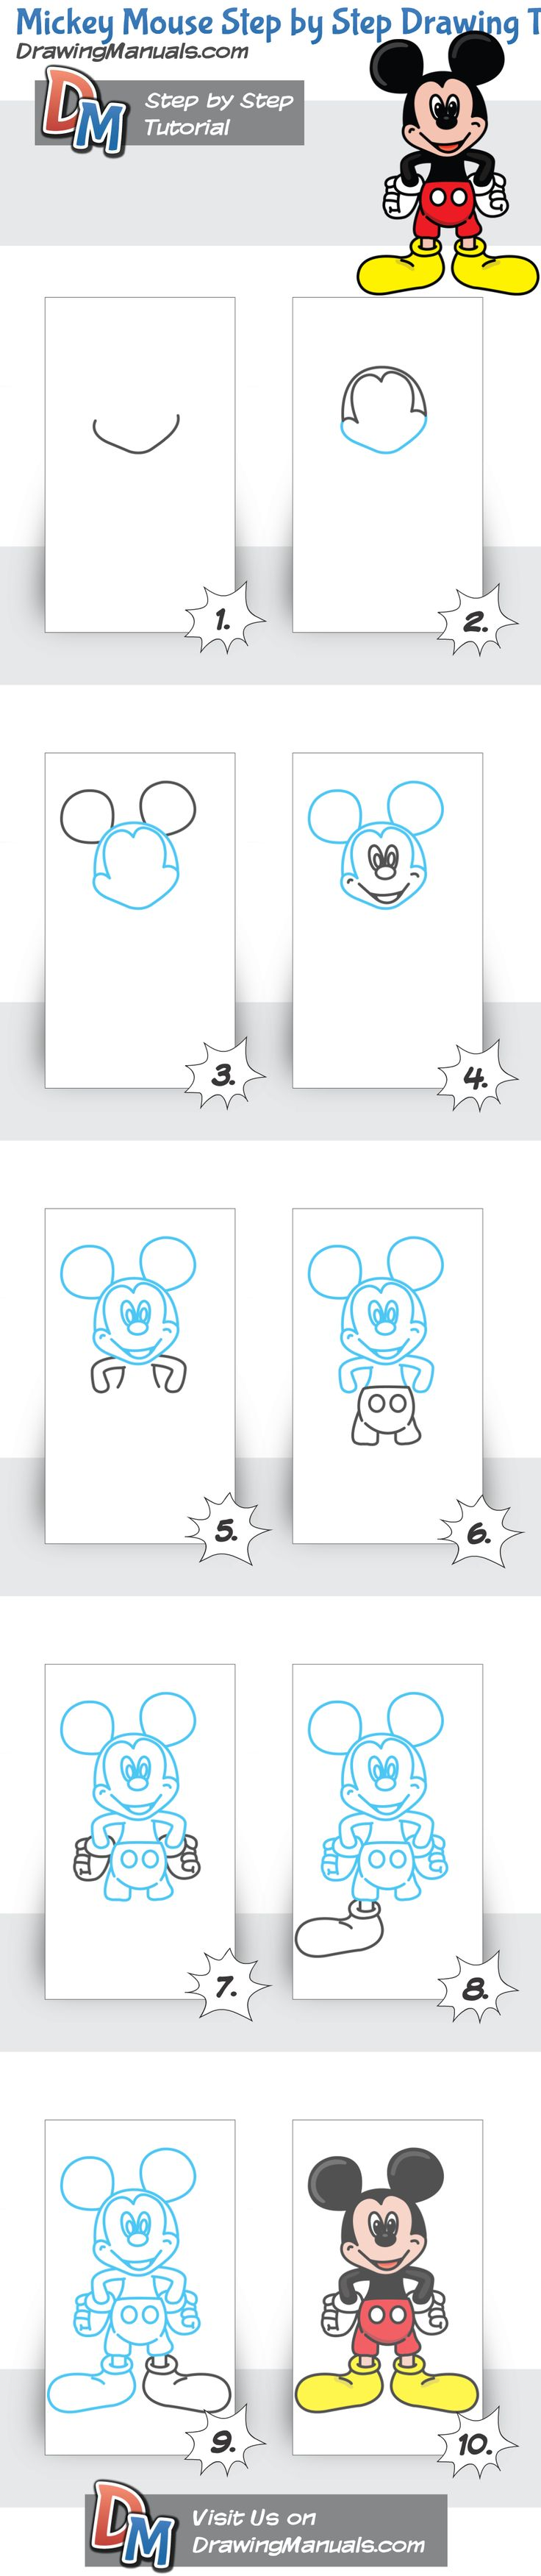 Uncategorized Disney Drawings Step By Step best 25 disney drawing tutorial ideas on pinterest stitch how to draw mickey mouse step by tutorial